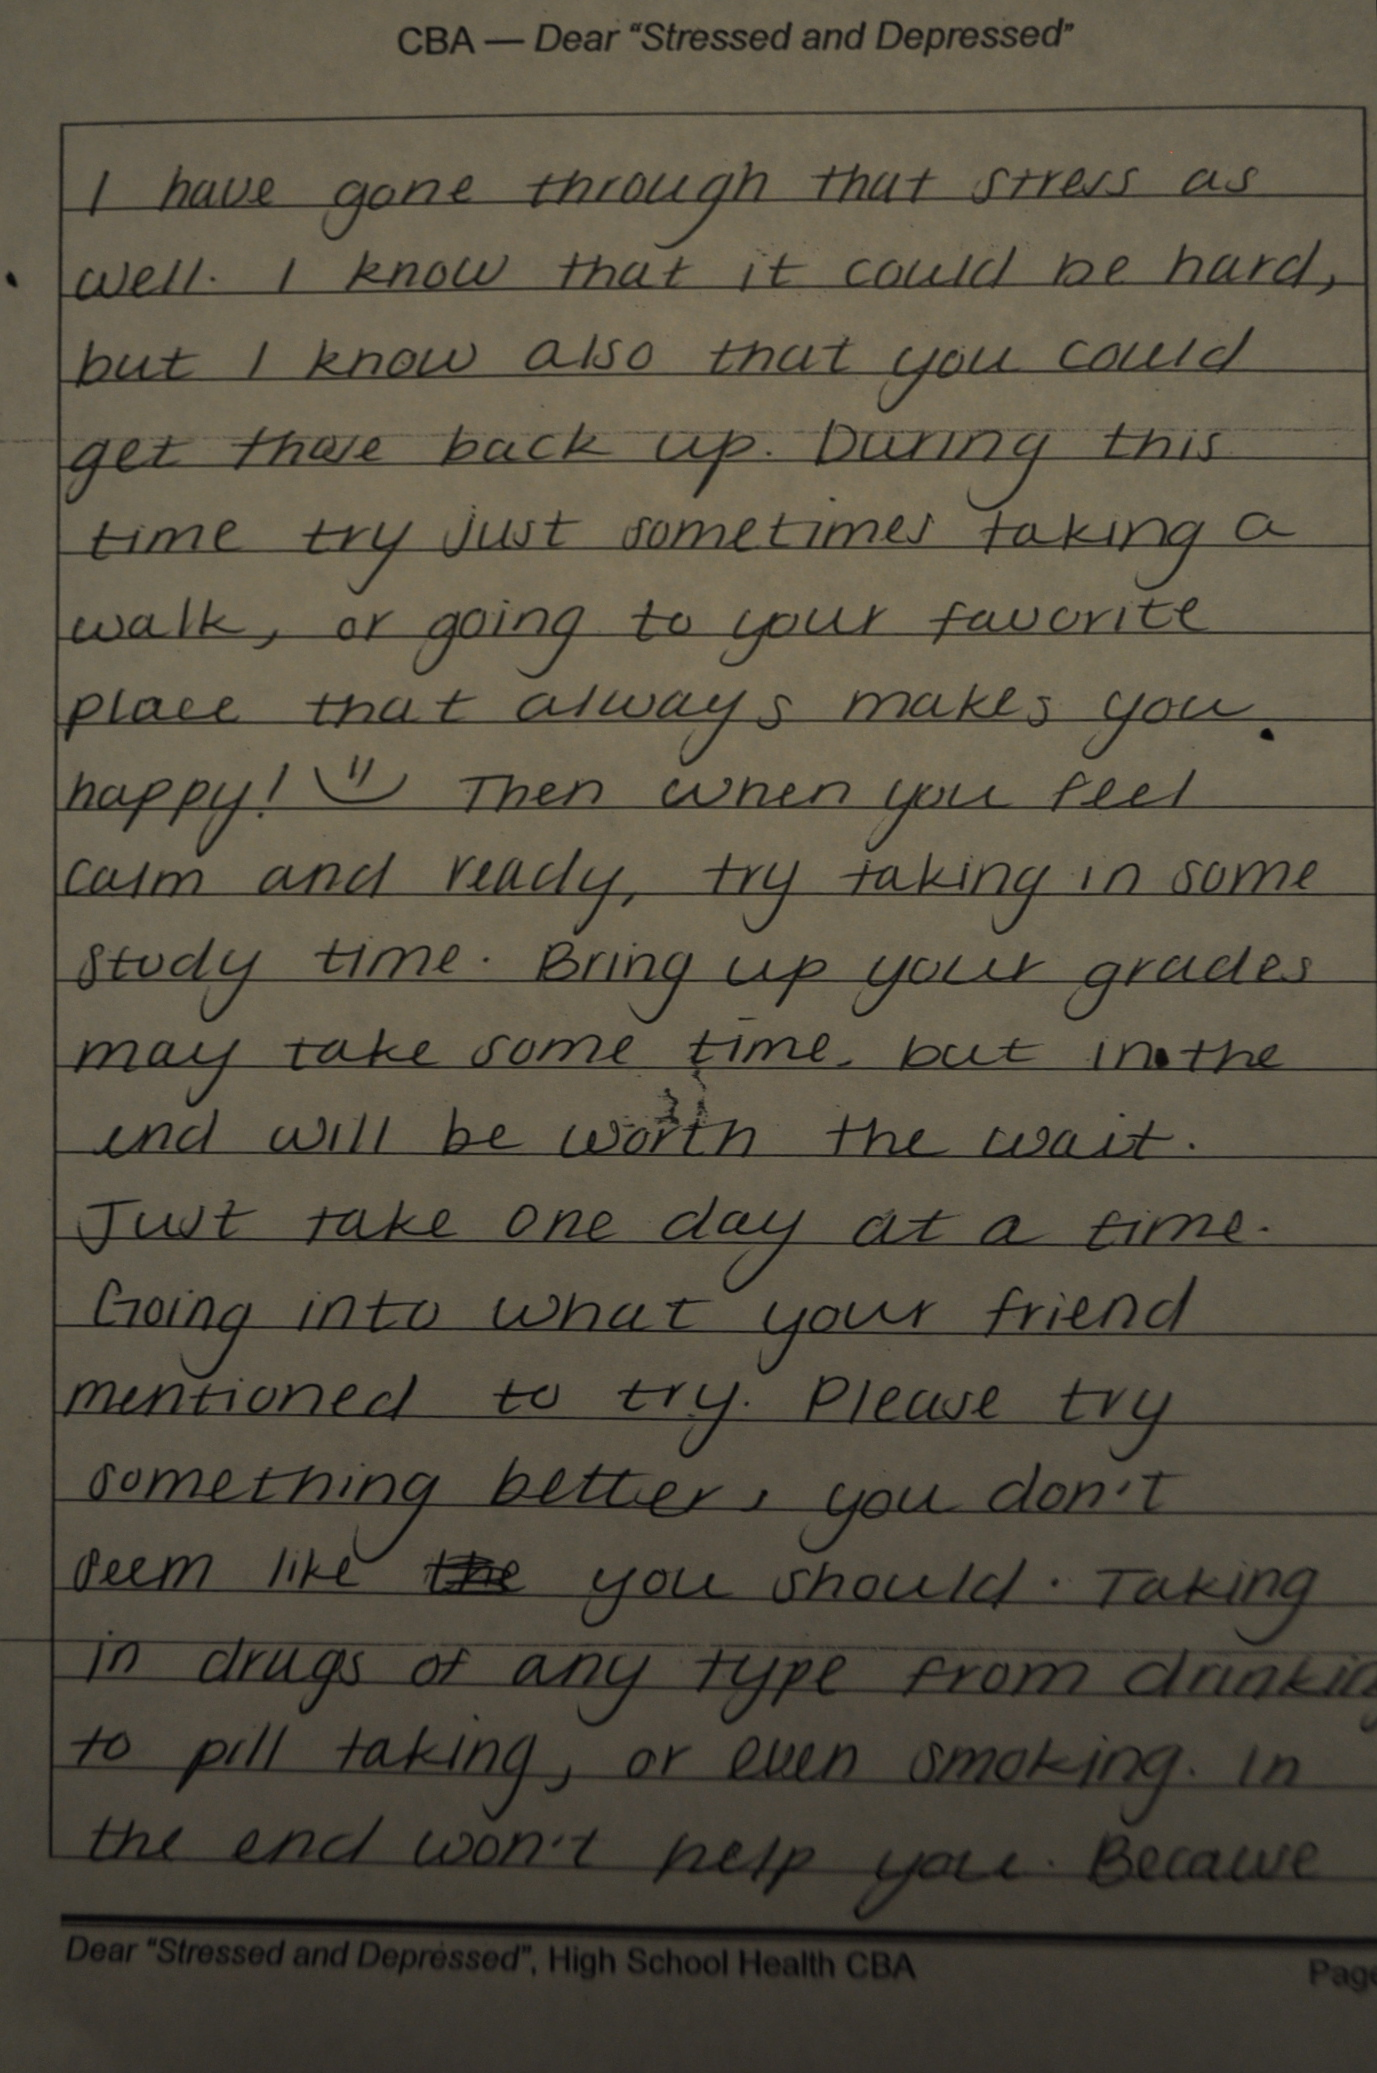 Students Reply To Stressed And Depressed Fcs Teacher